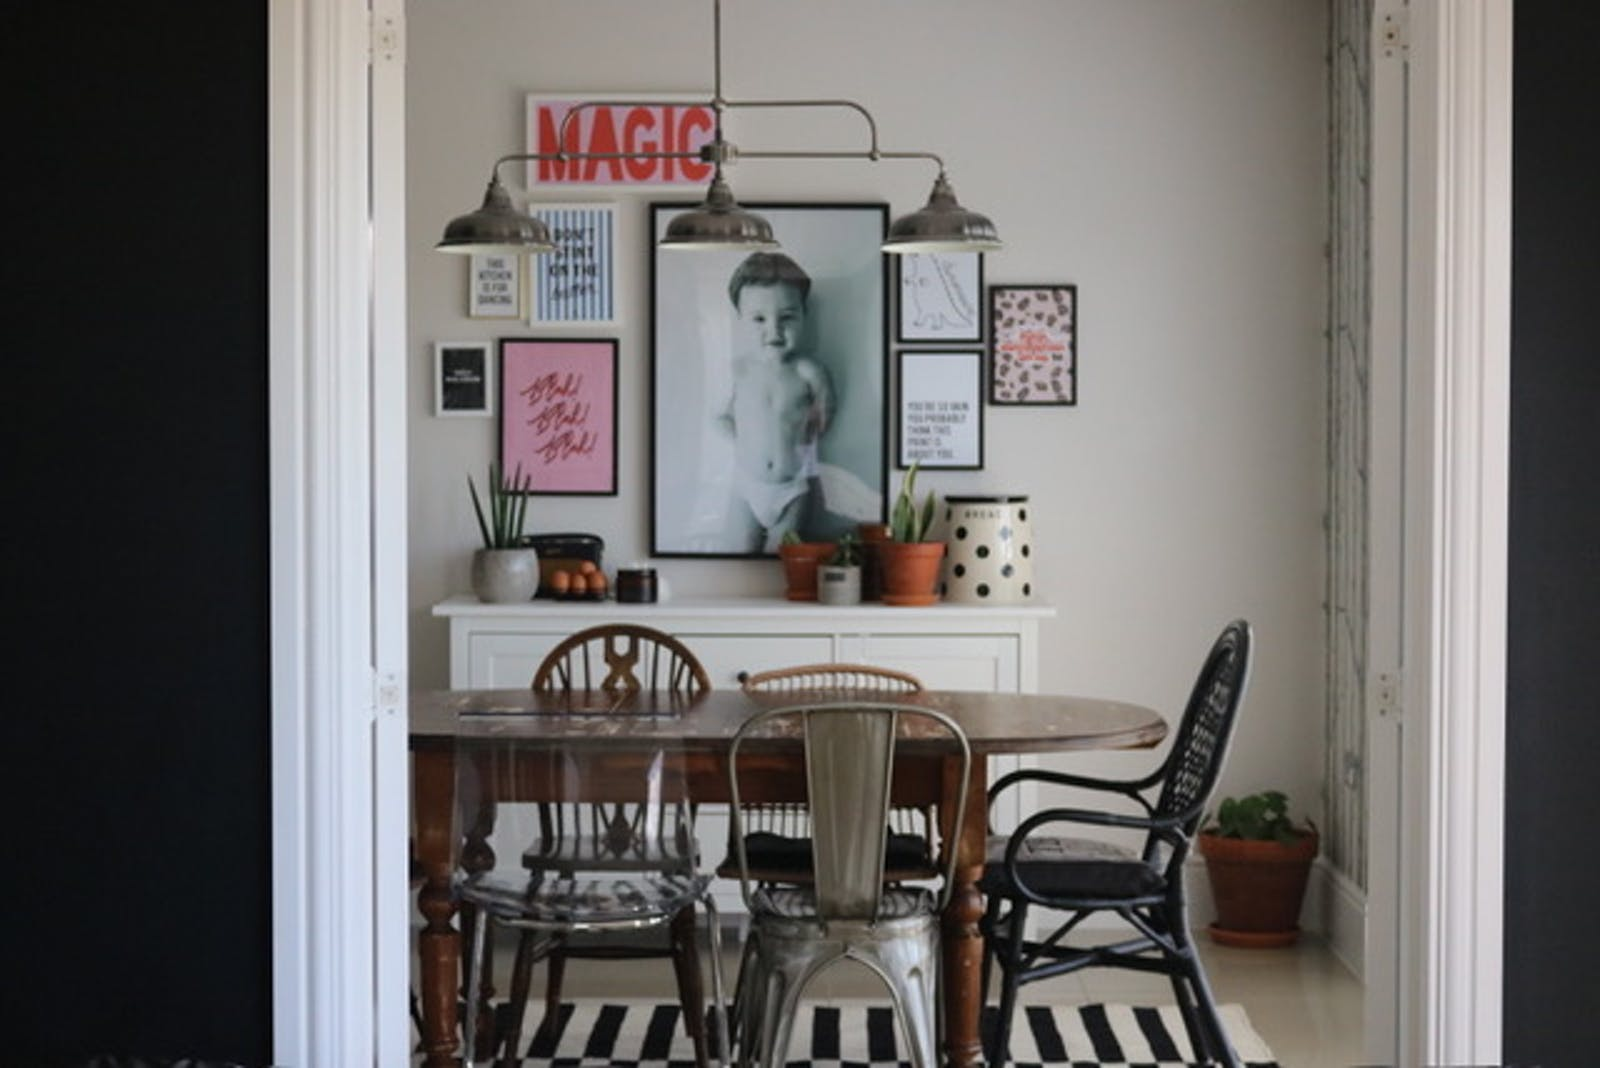 Dining table with photos and posters placed on the wall behind it